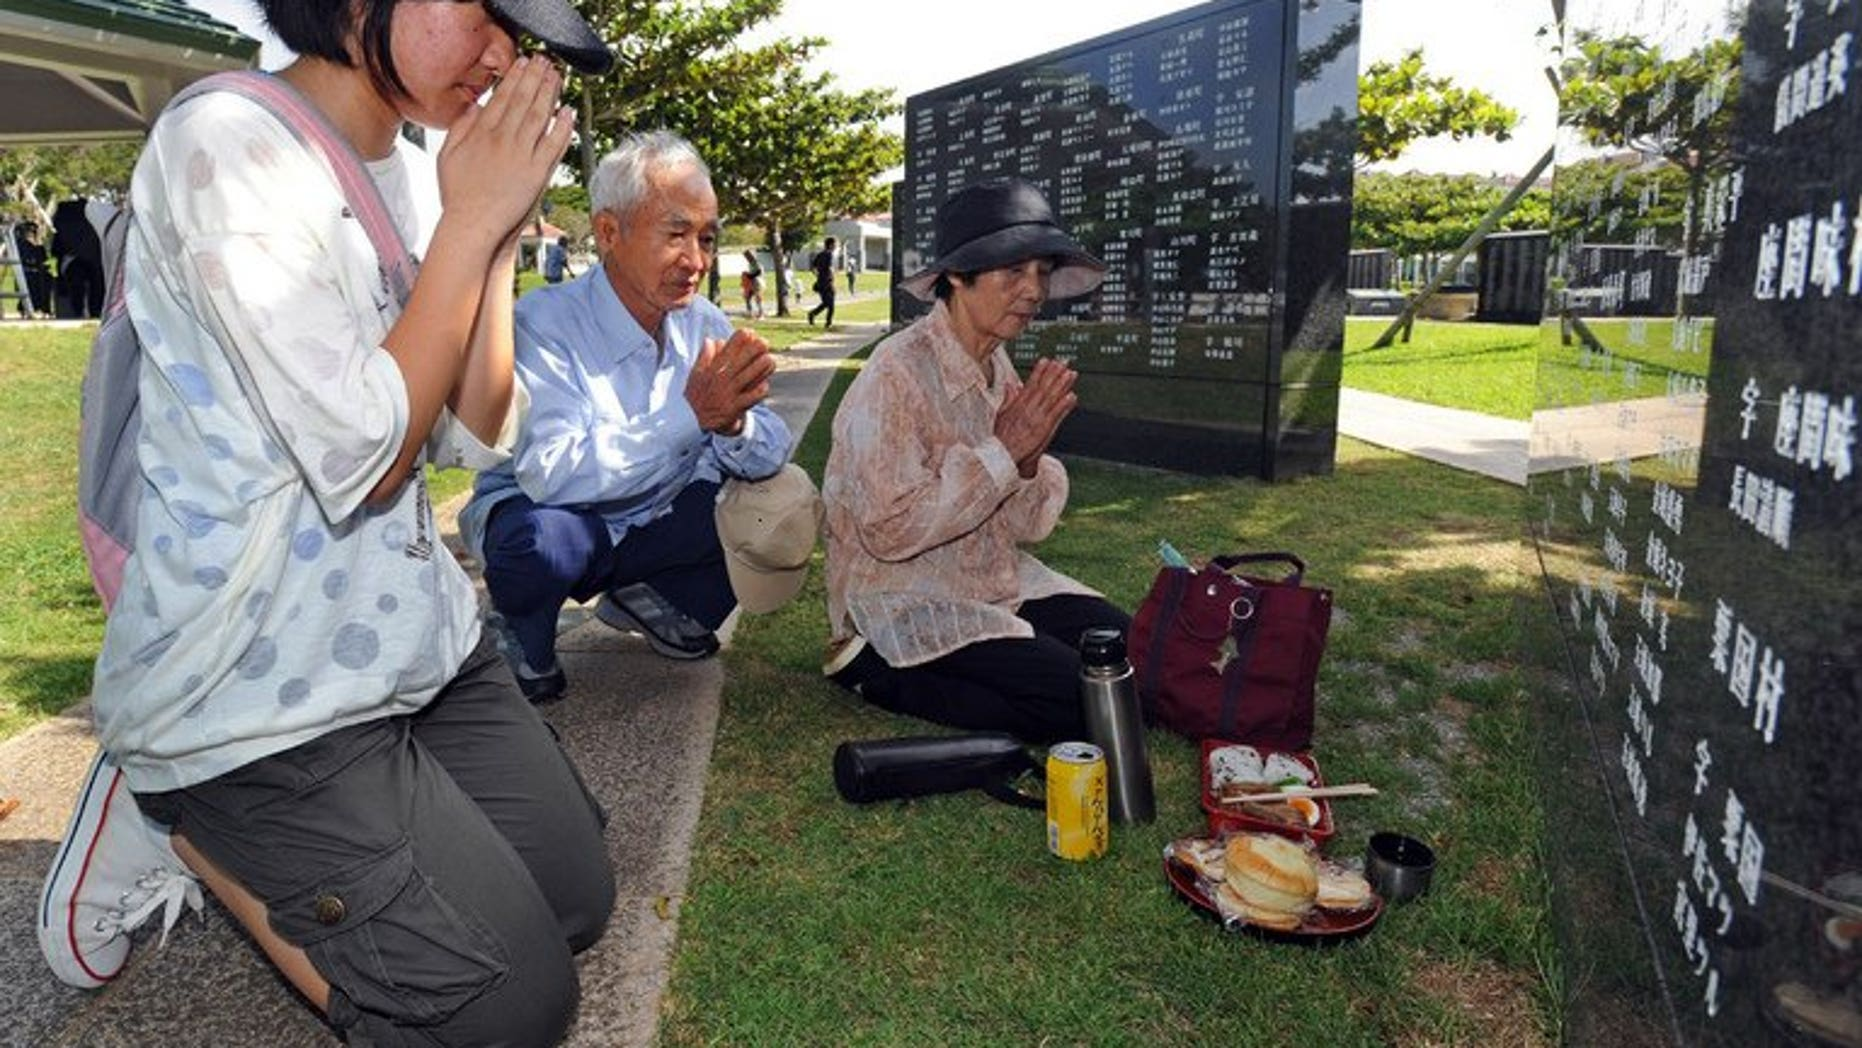 """Relatives of victims killed at the 'Battle of Okinawa' pray during a memorial service at the Peace Memorial Park in Itoman, on June 23, 2013. Okinawa has marked the 68th anniversary of a bloody World War II battle, with Japan's prime minister vowing to """"lighten the burden"""" of local residents opposed to a heavy US military presence on the southern Japanese island."""